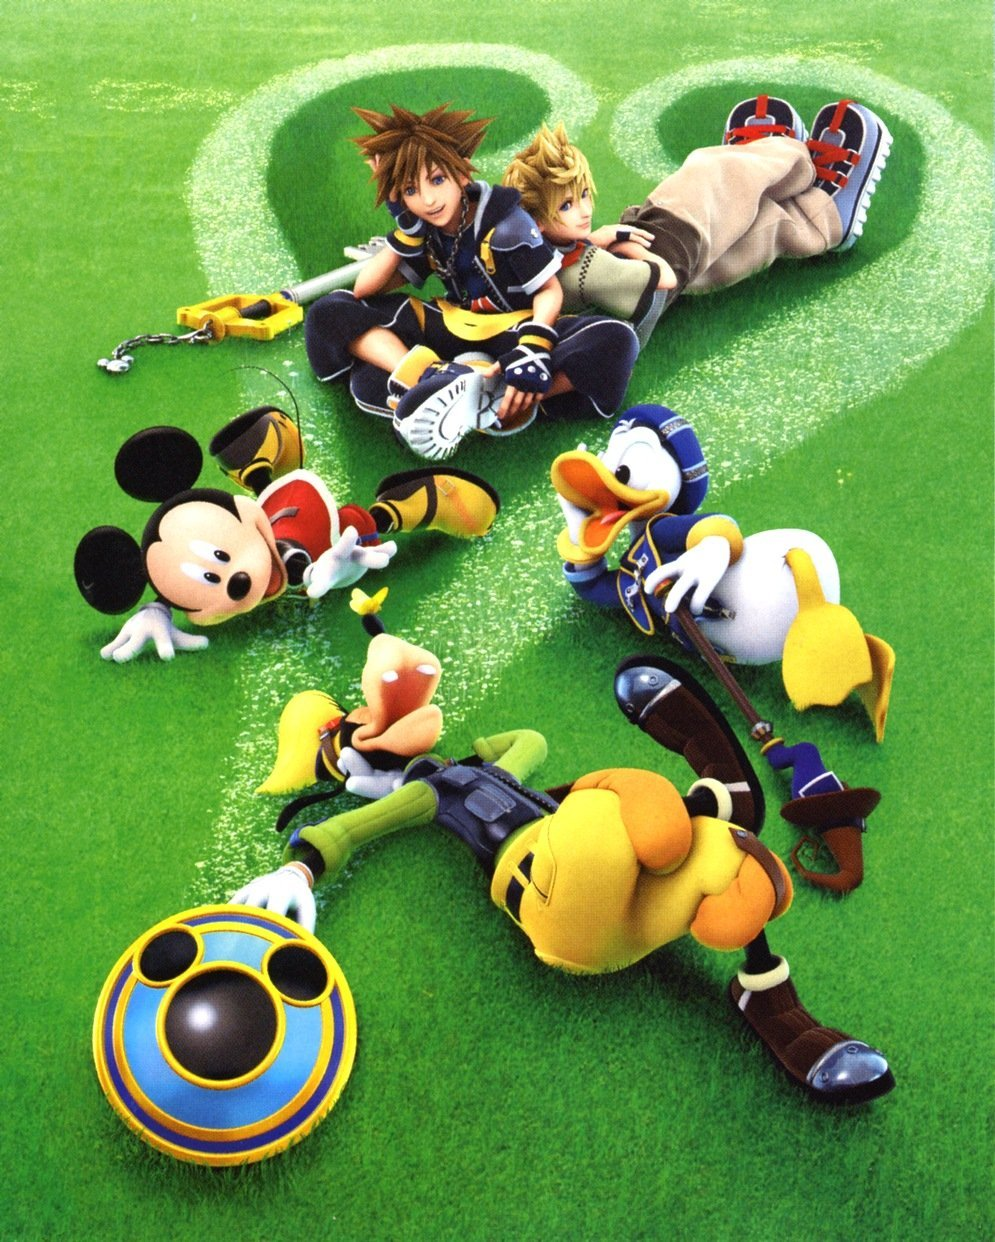 kingdom Hearts disney Company HD Wallpaper